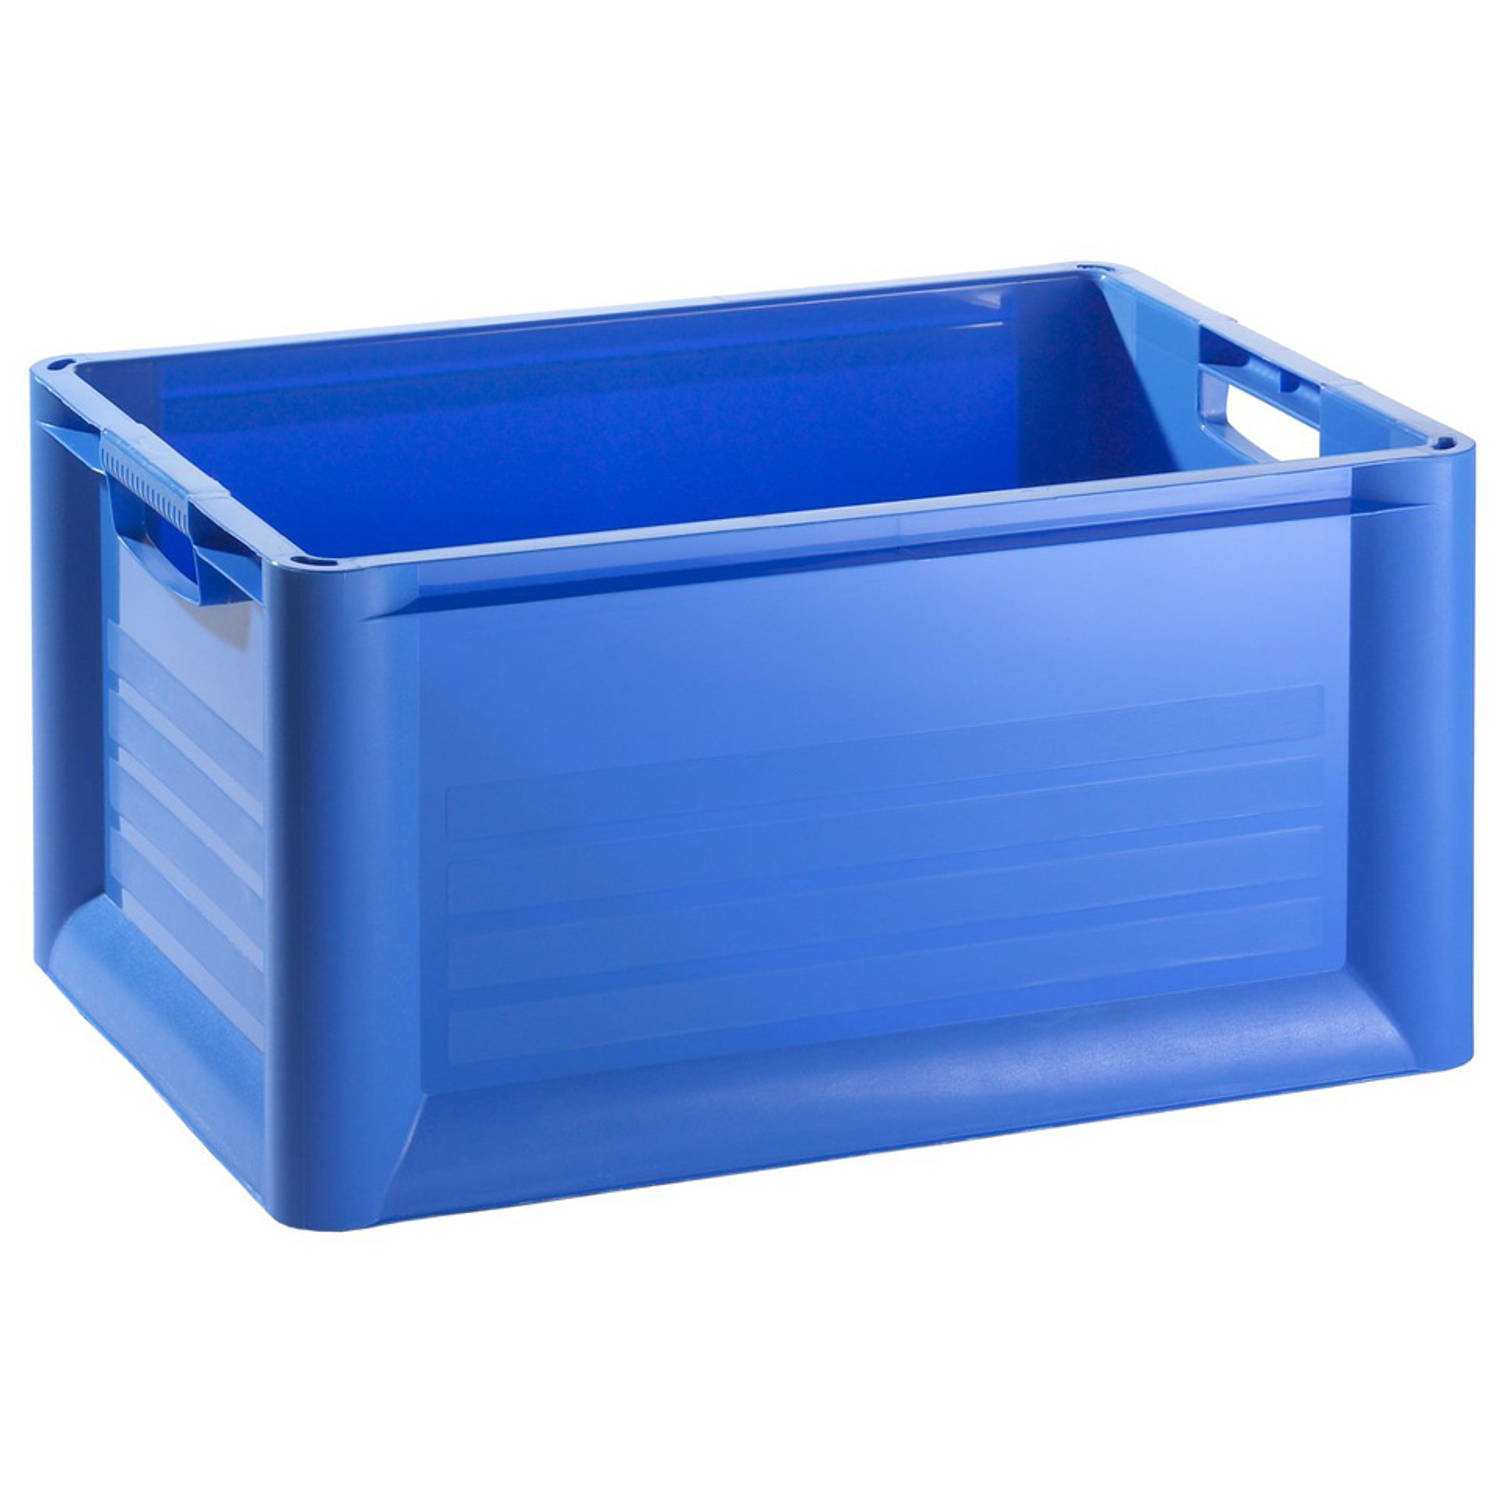 Curver Unibox 2nd Generation opbergbox 60 liter - blauw